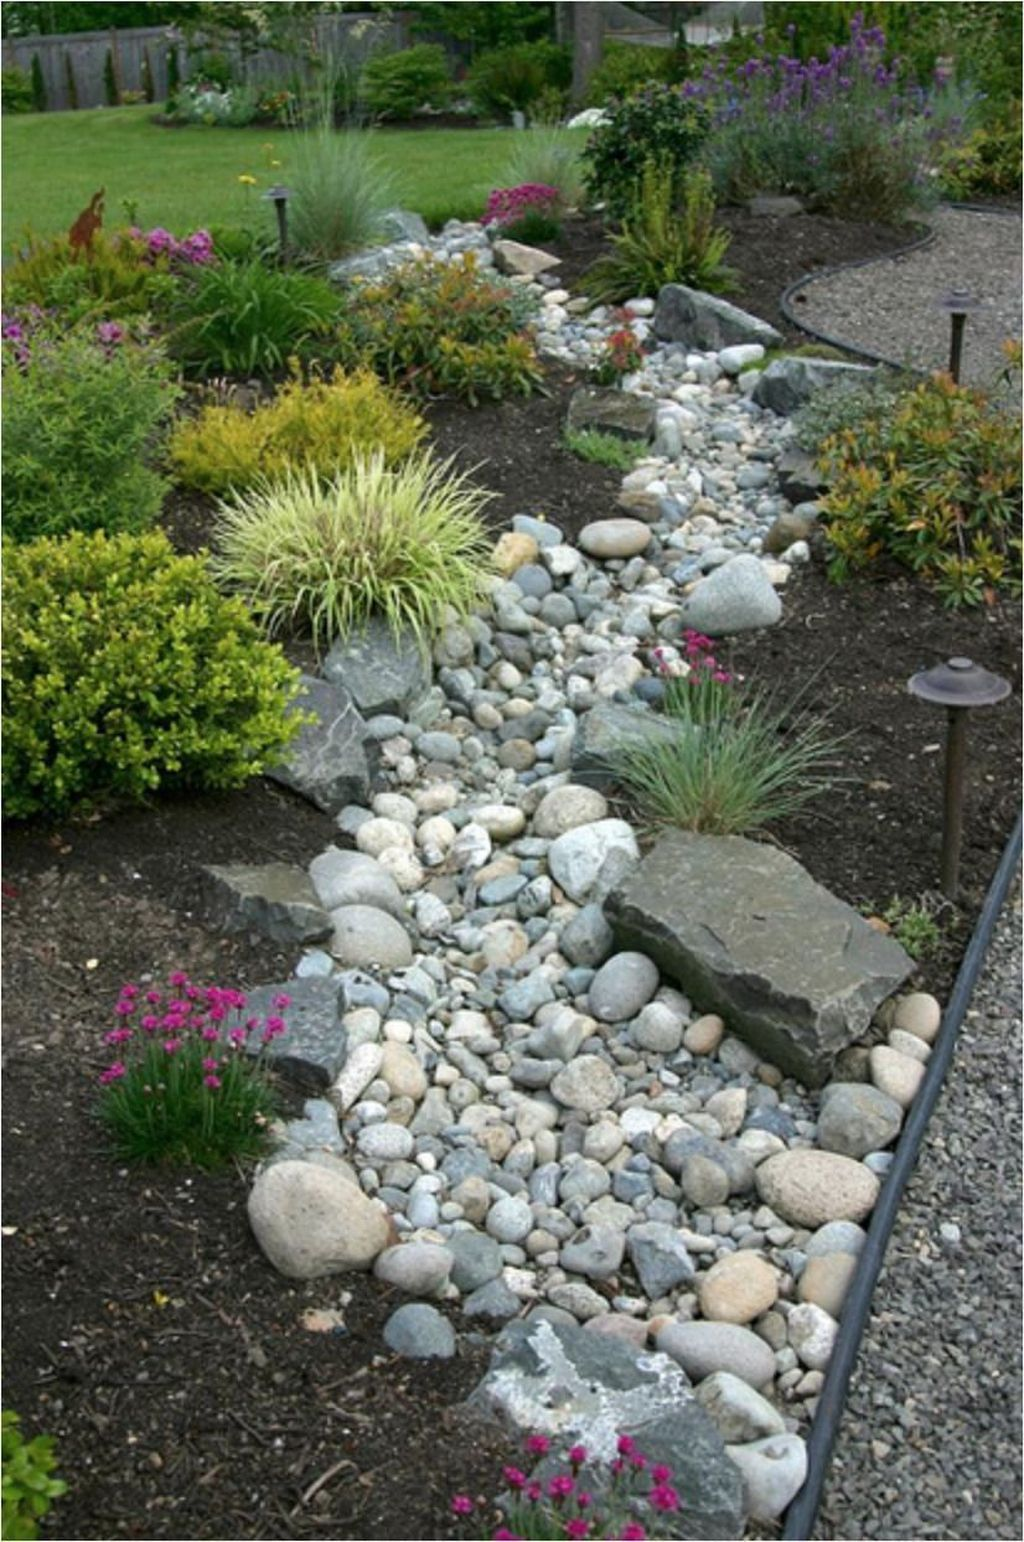 34 Fabulous Modern Rock Garden Ideas You Should Try Now In 2020 Small Front Yard Landscaping Rock Garden Landscaping River Rock Garden,Magazine Customer Service